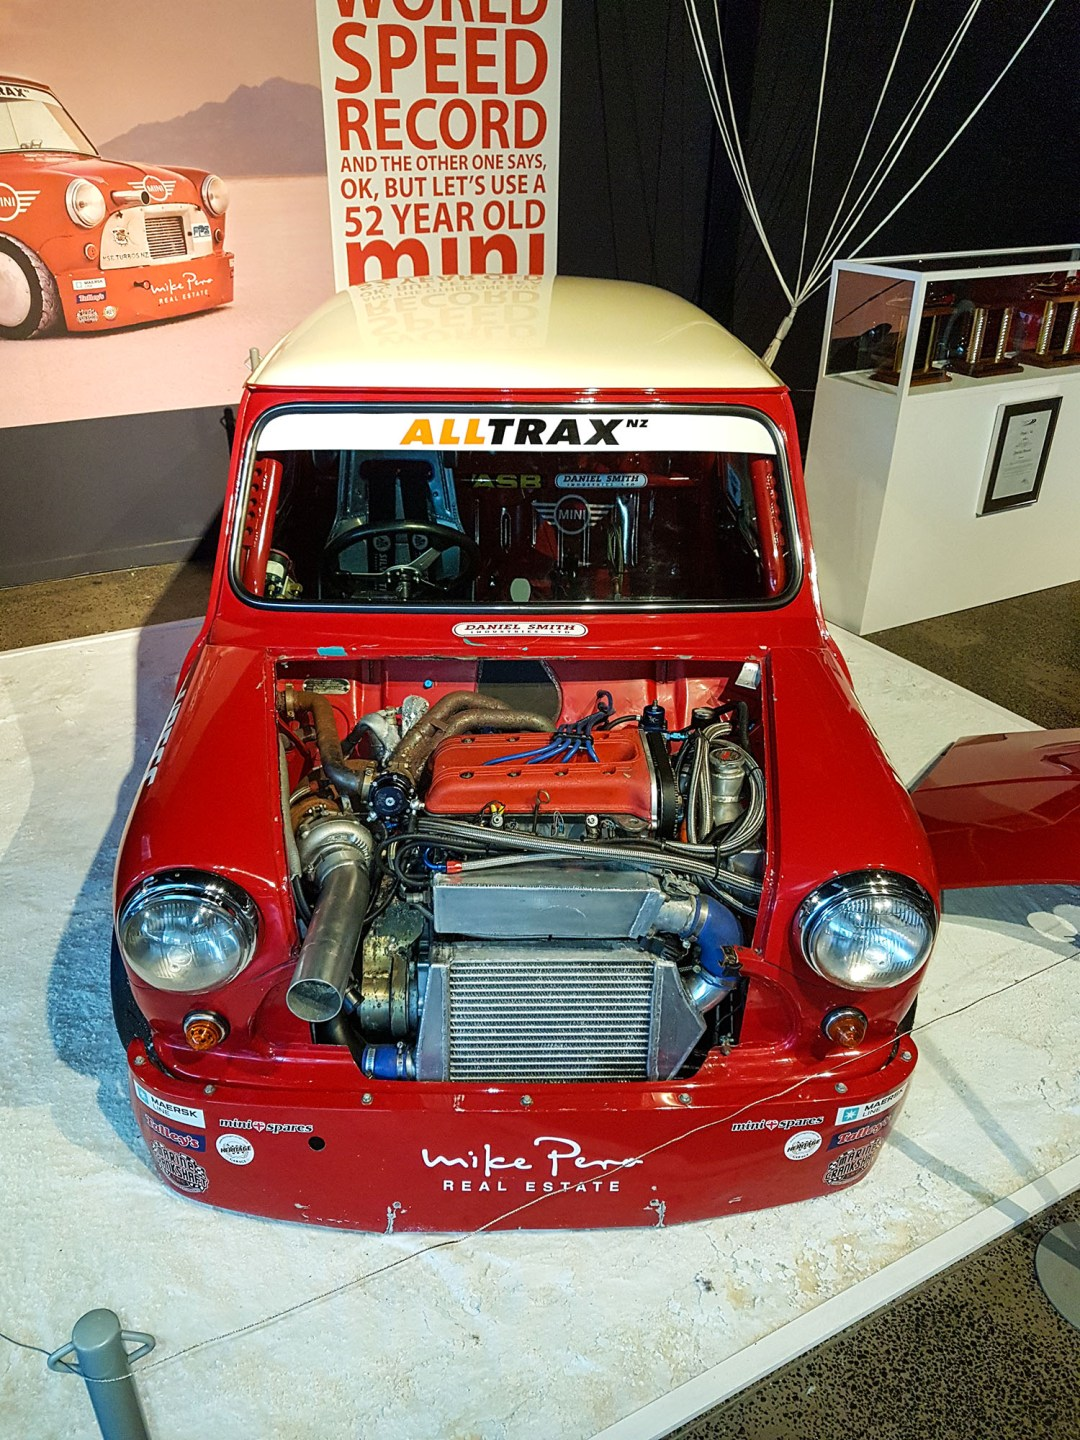 Land Speed Record Mini front at WOW Classic Cars for boomervoice